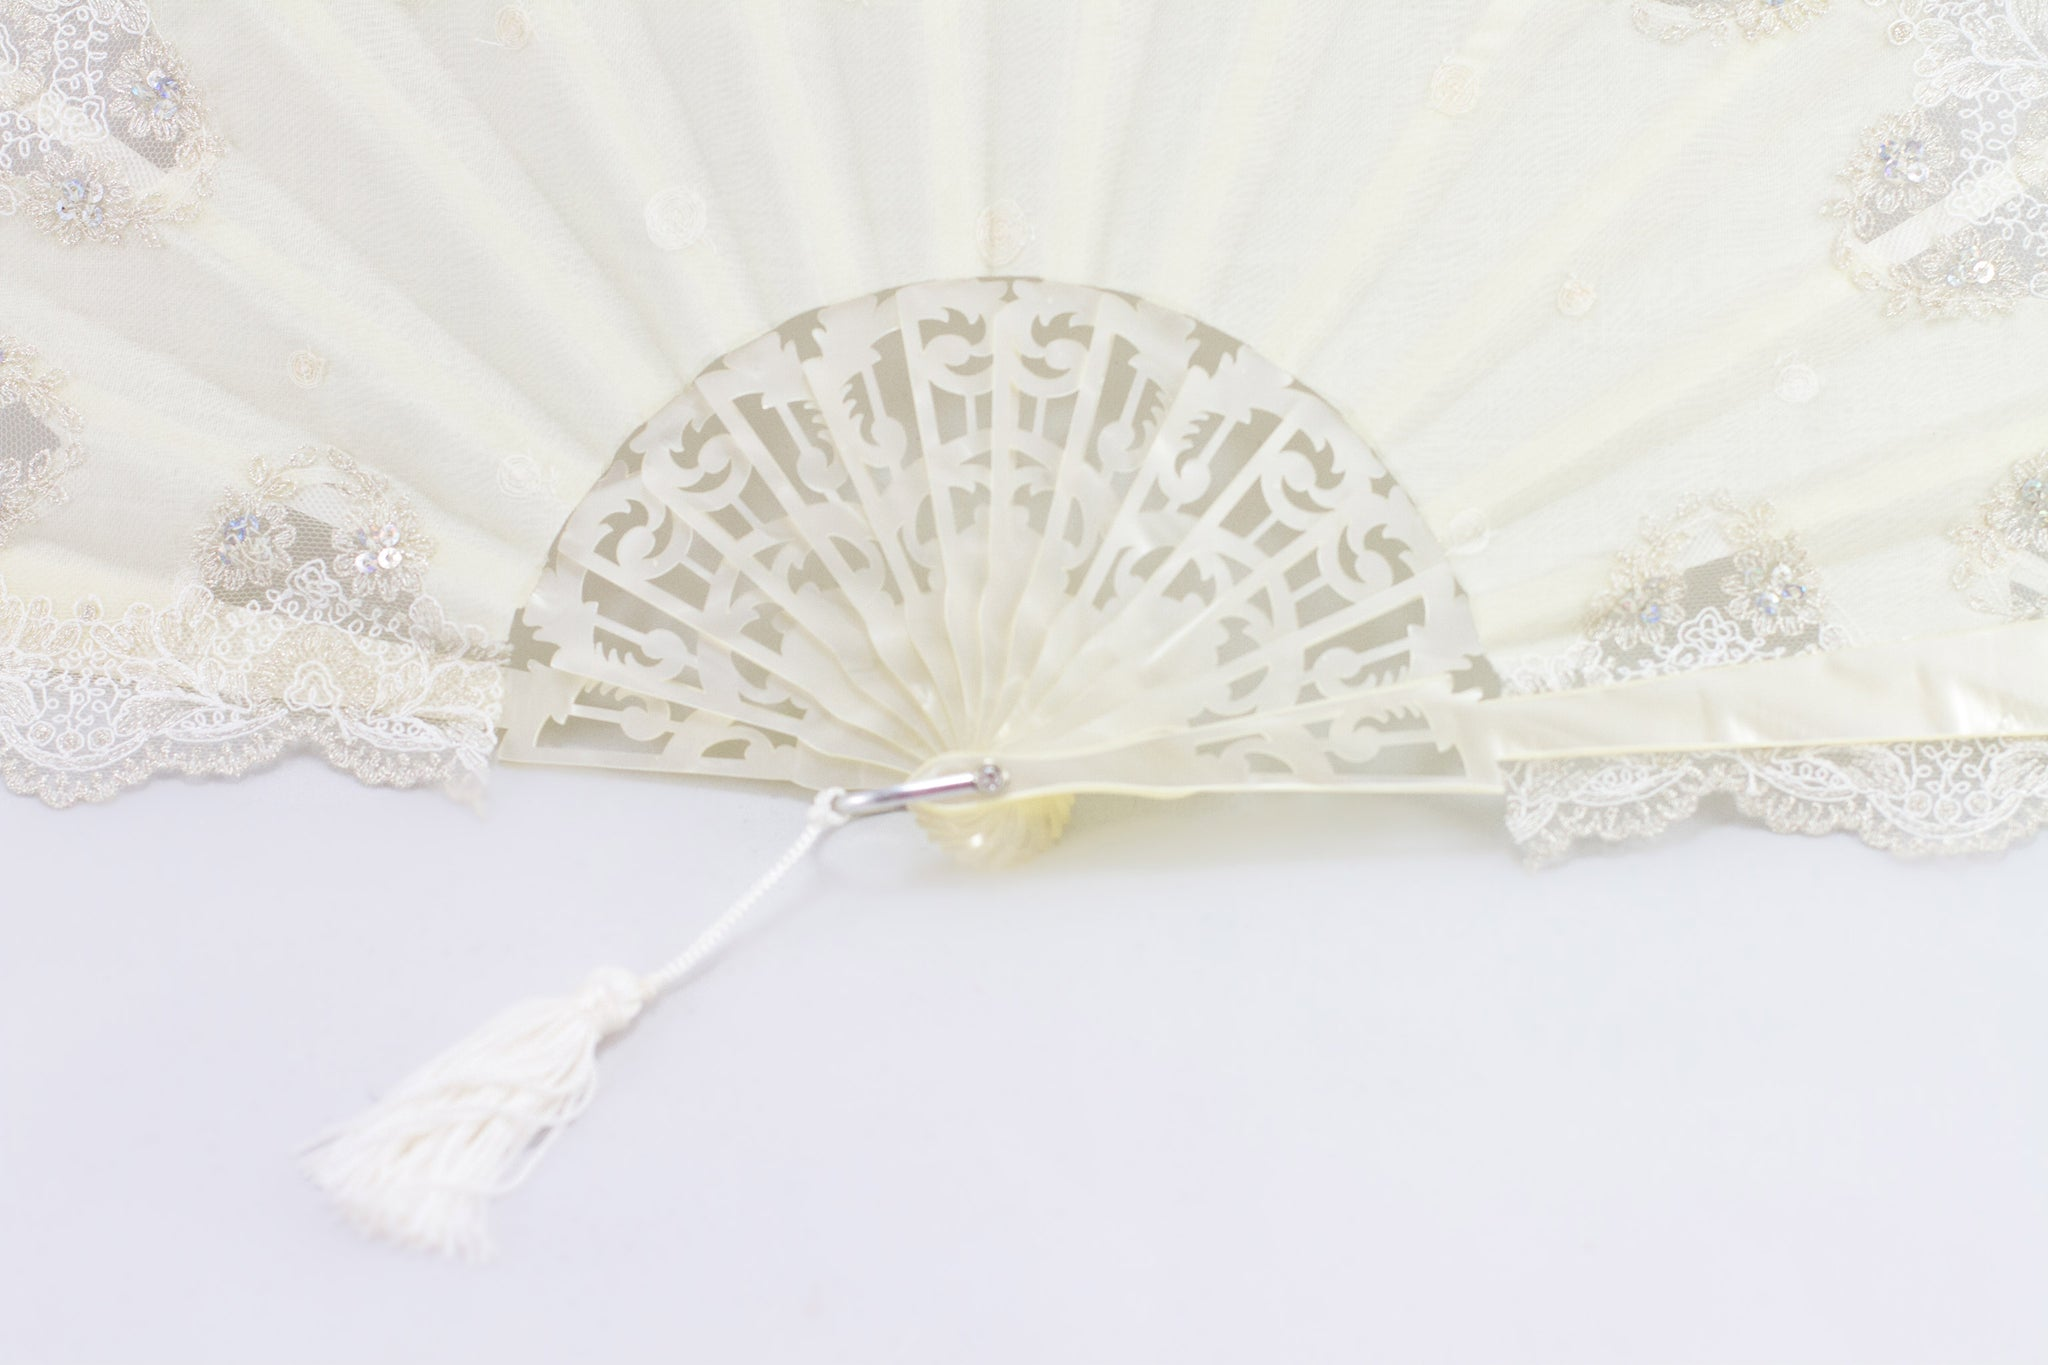 Savannah - Exquisite cream and silver luxury hand fan - close up